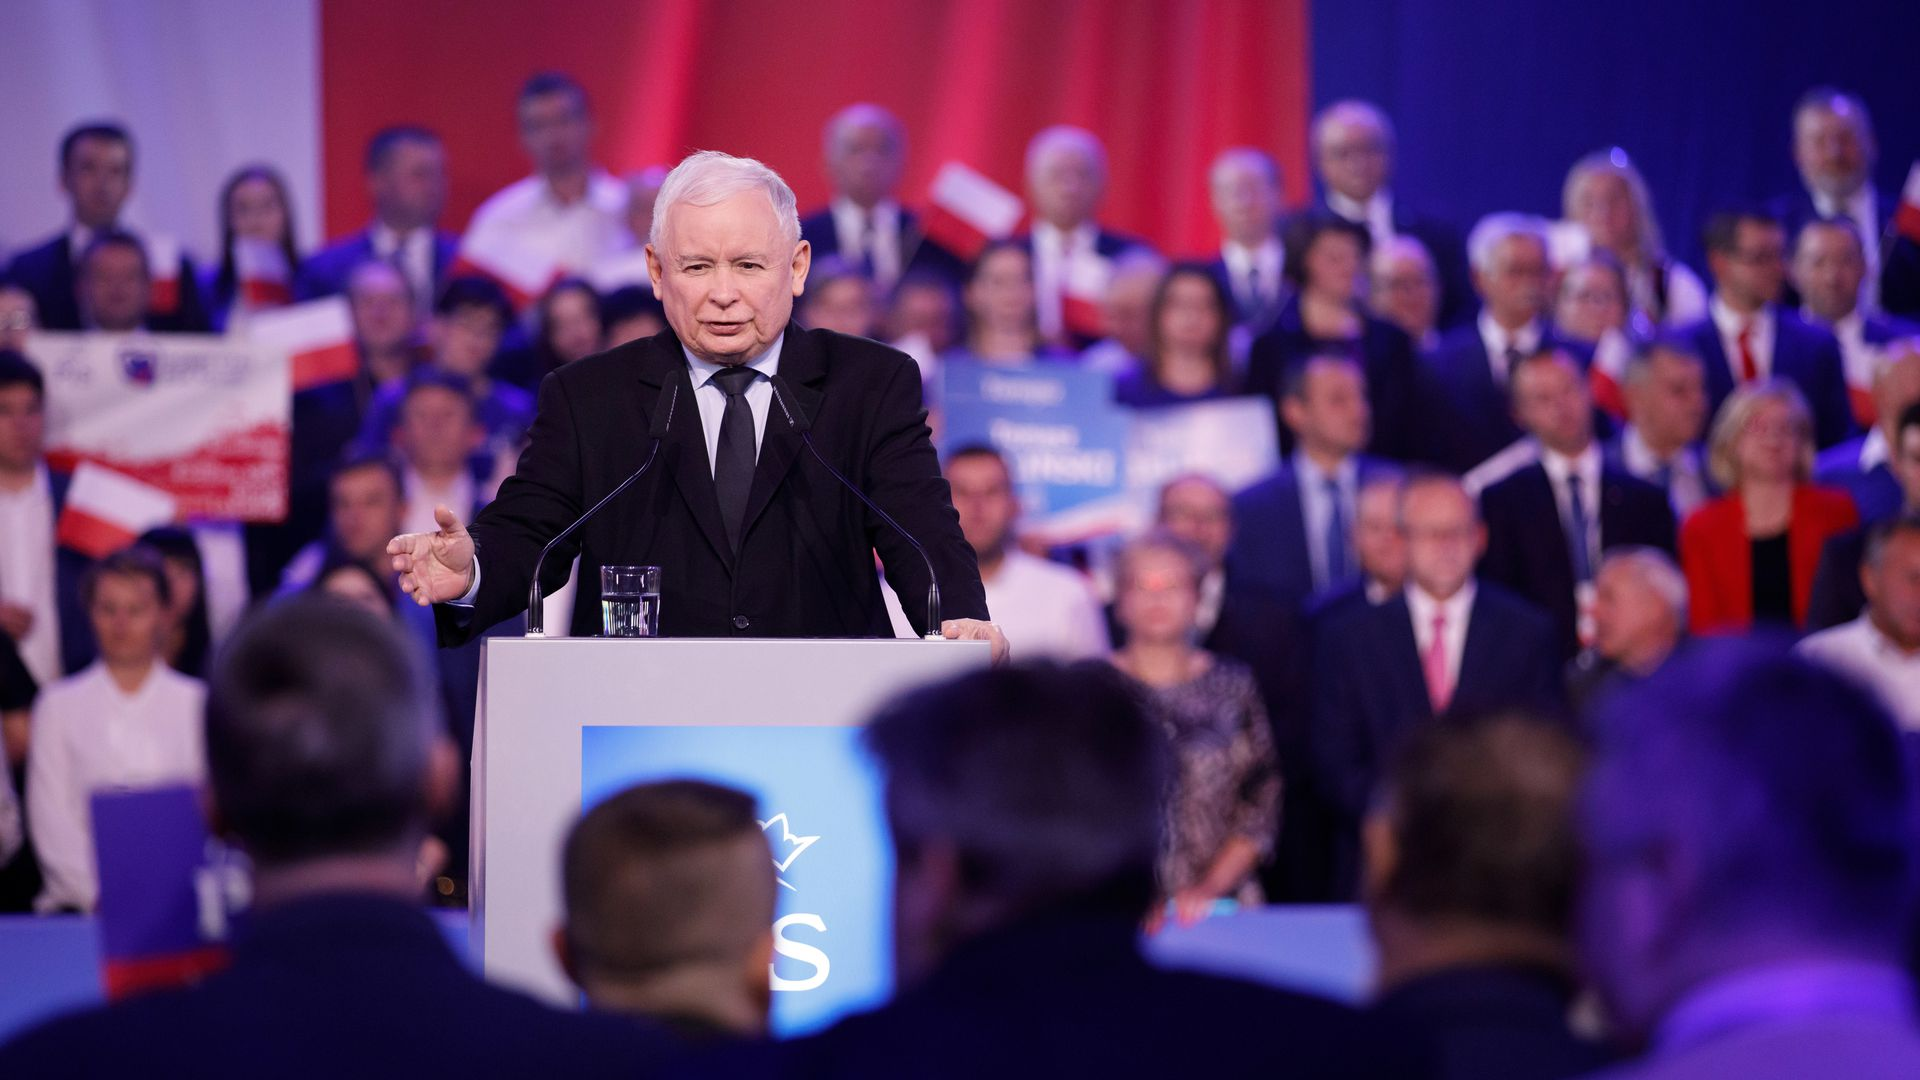 Leader of Poland's law and justice party